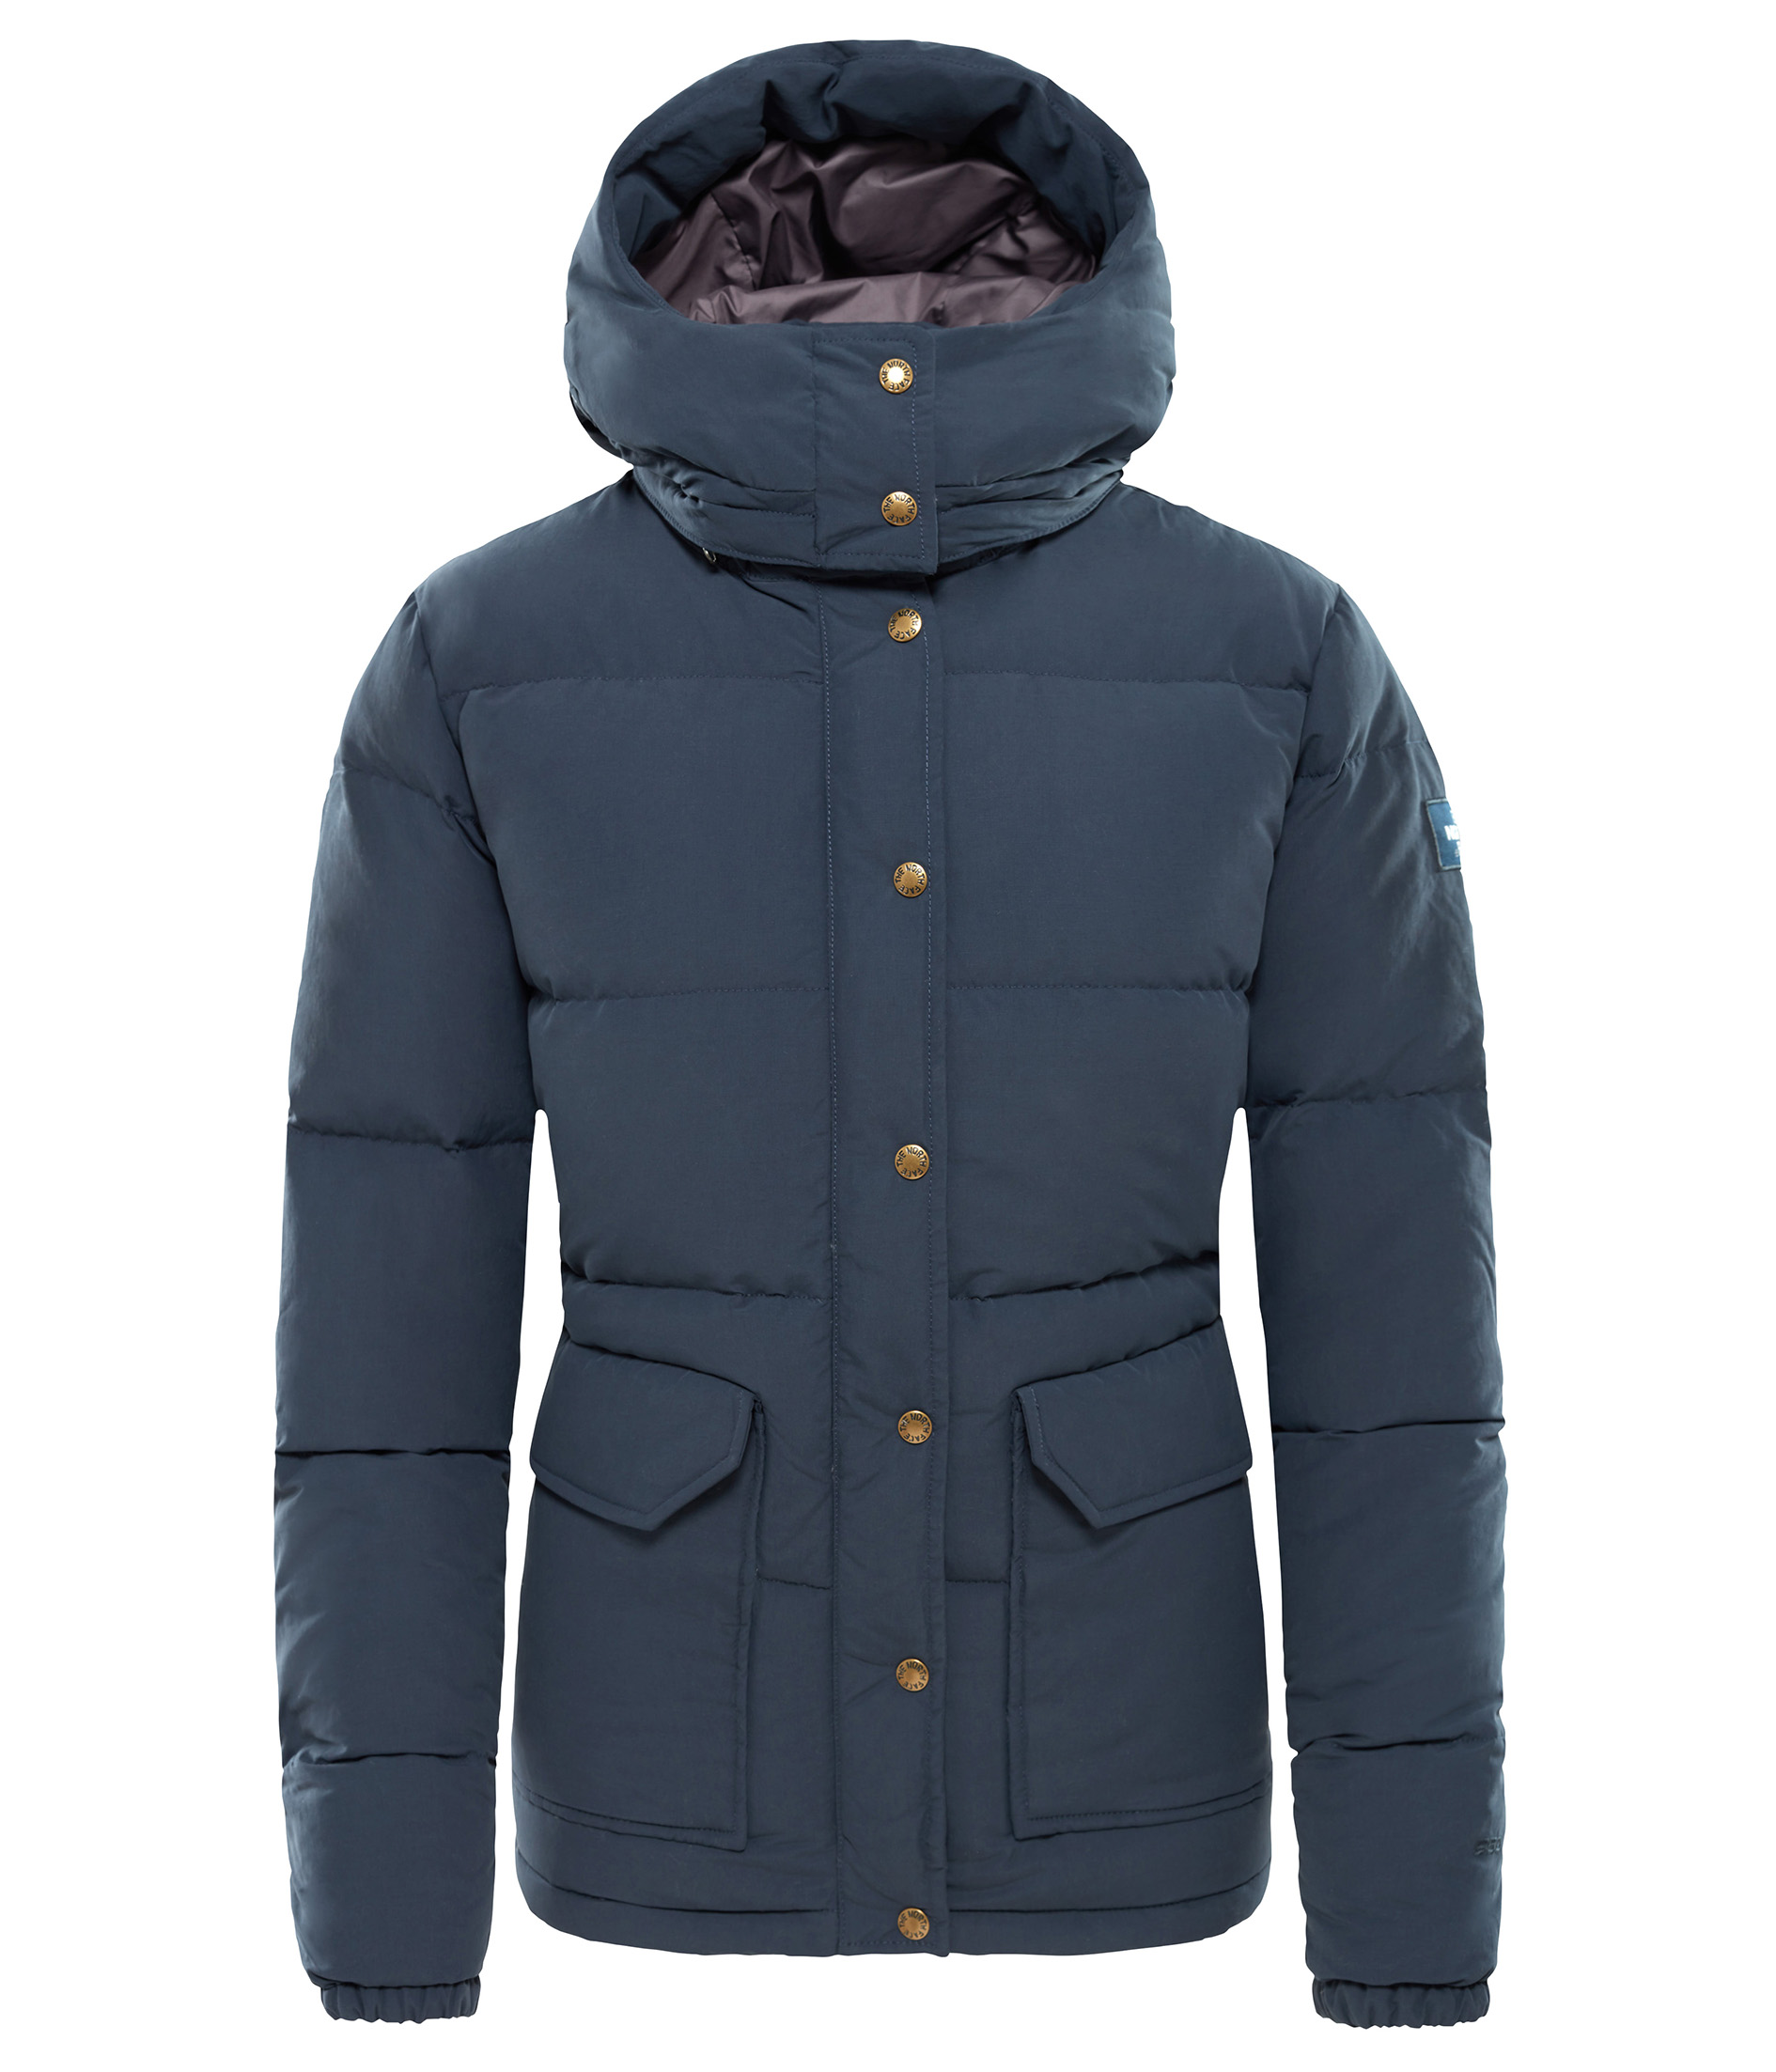 THE NORTH FACE W DOWN SIERRA JACKET 2.0, URBAN NAVY velikost: M